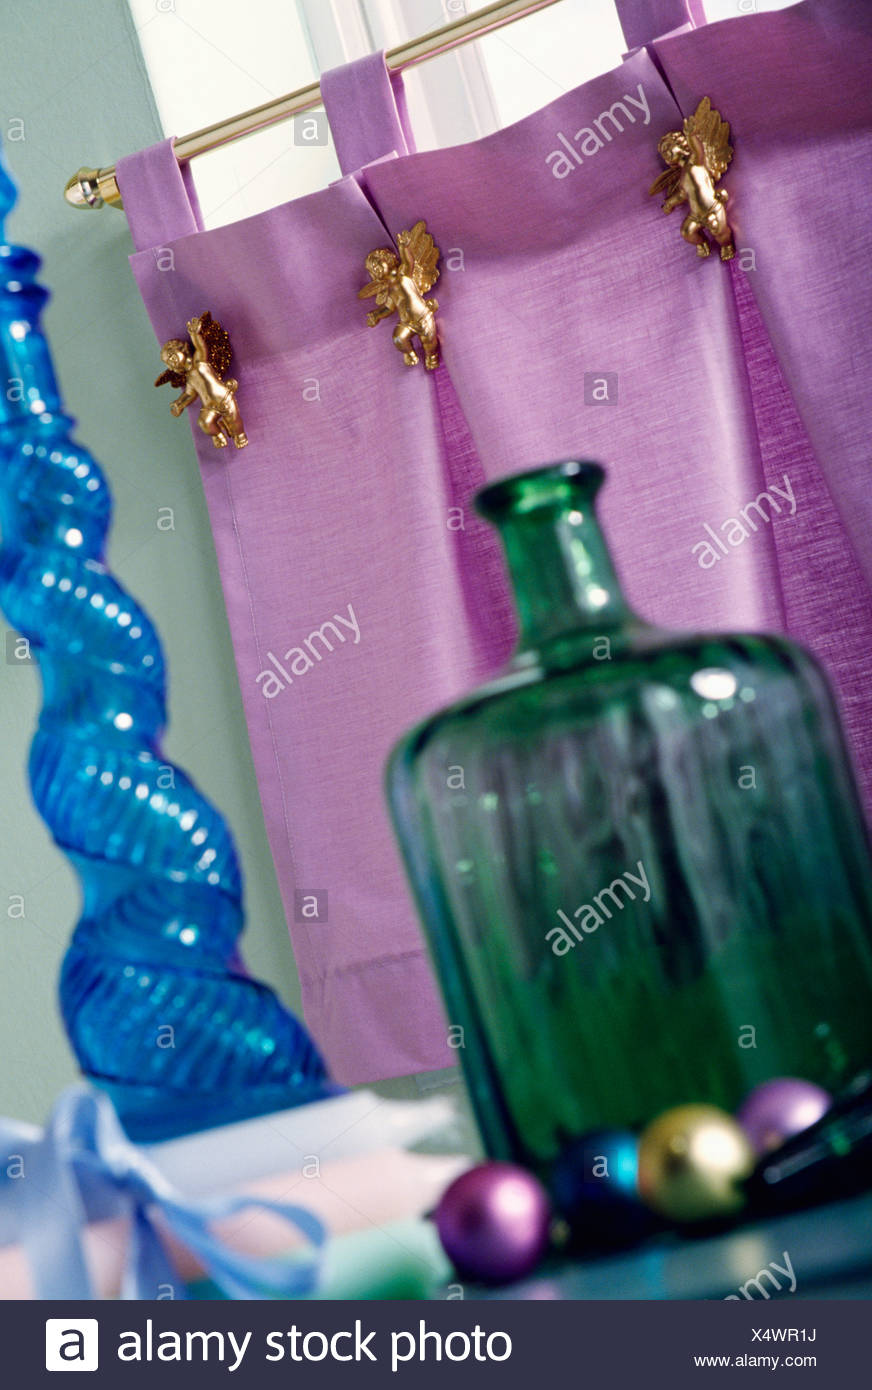 Cafe Curtain Clips Close Up Of Green Glass Bottle And Blue Spiral Bottle In Front Of